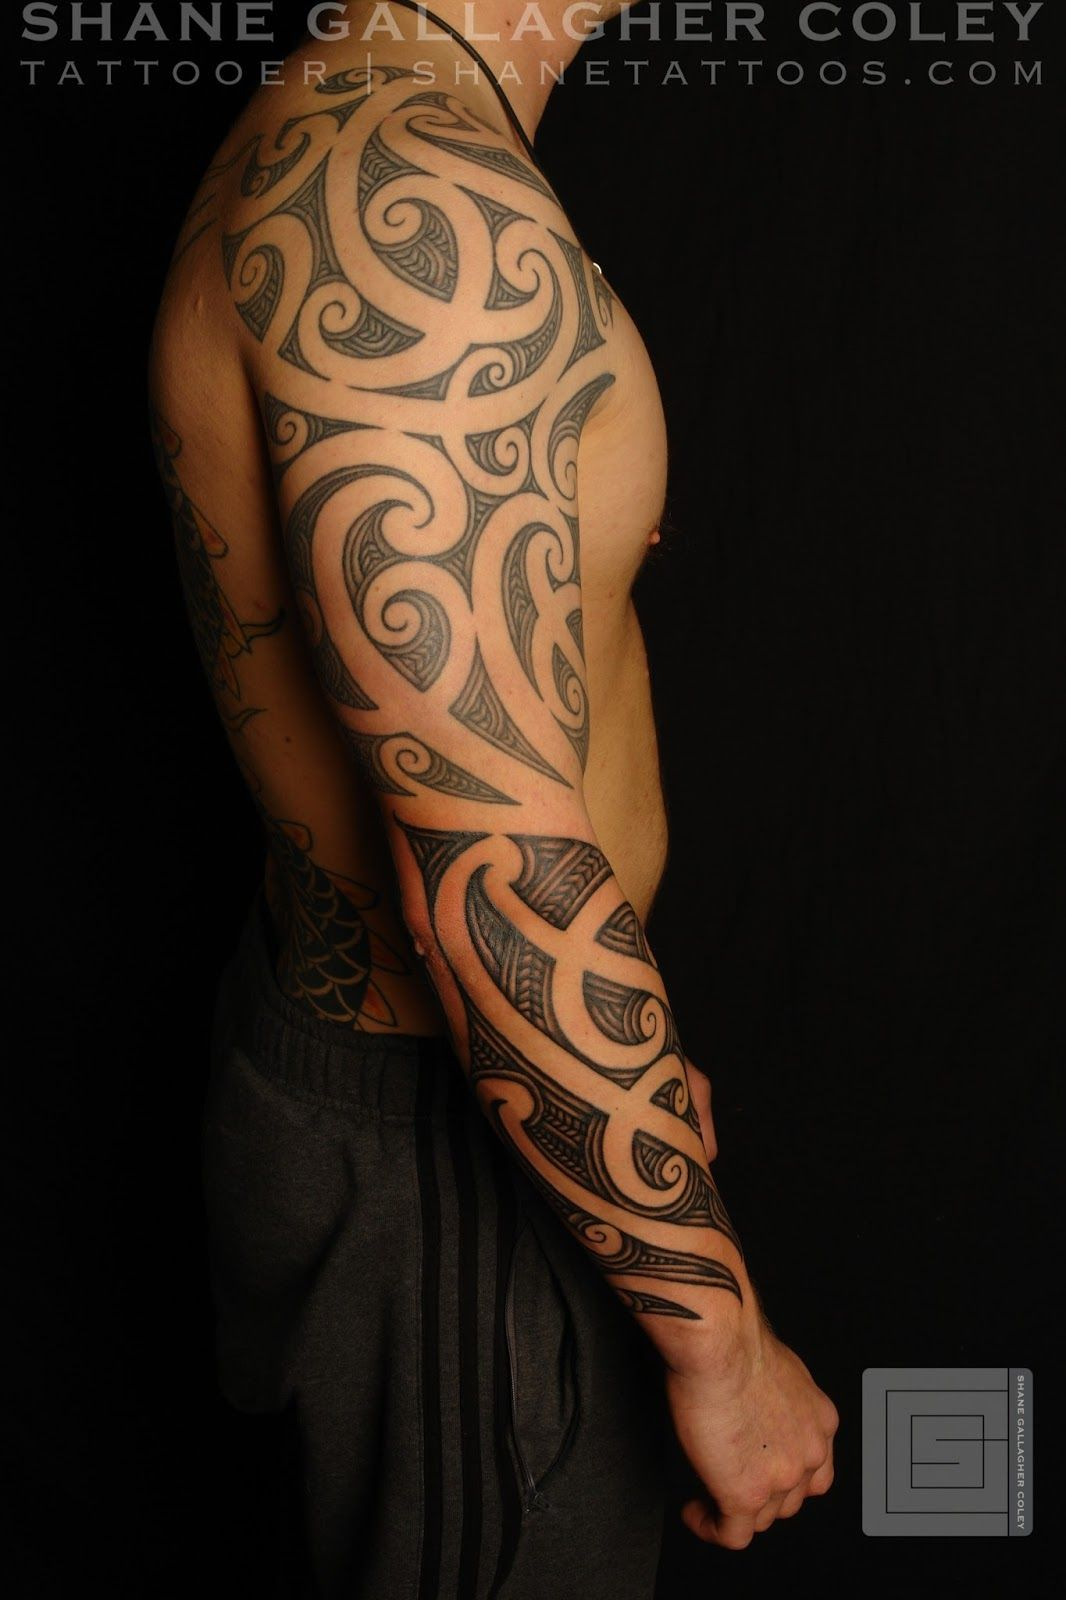 maori tattoo by shane gallagher maori tattoo pinterest maori tattoos maori and tattoo. Black Bedroom Furniture Sets. Home Design Ideas